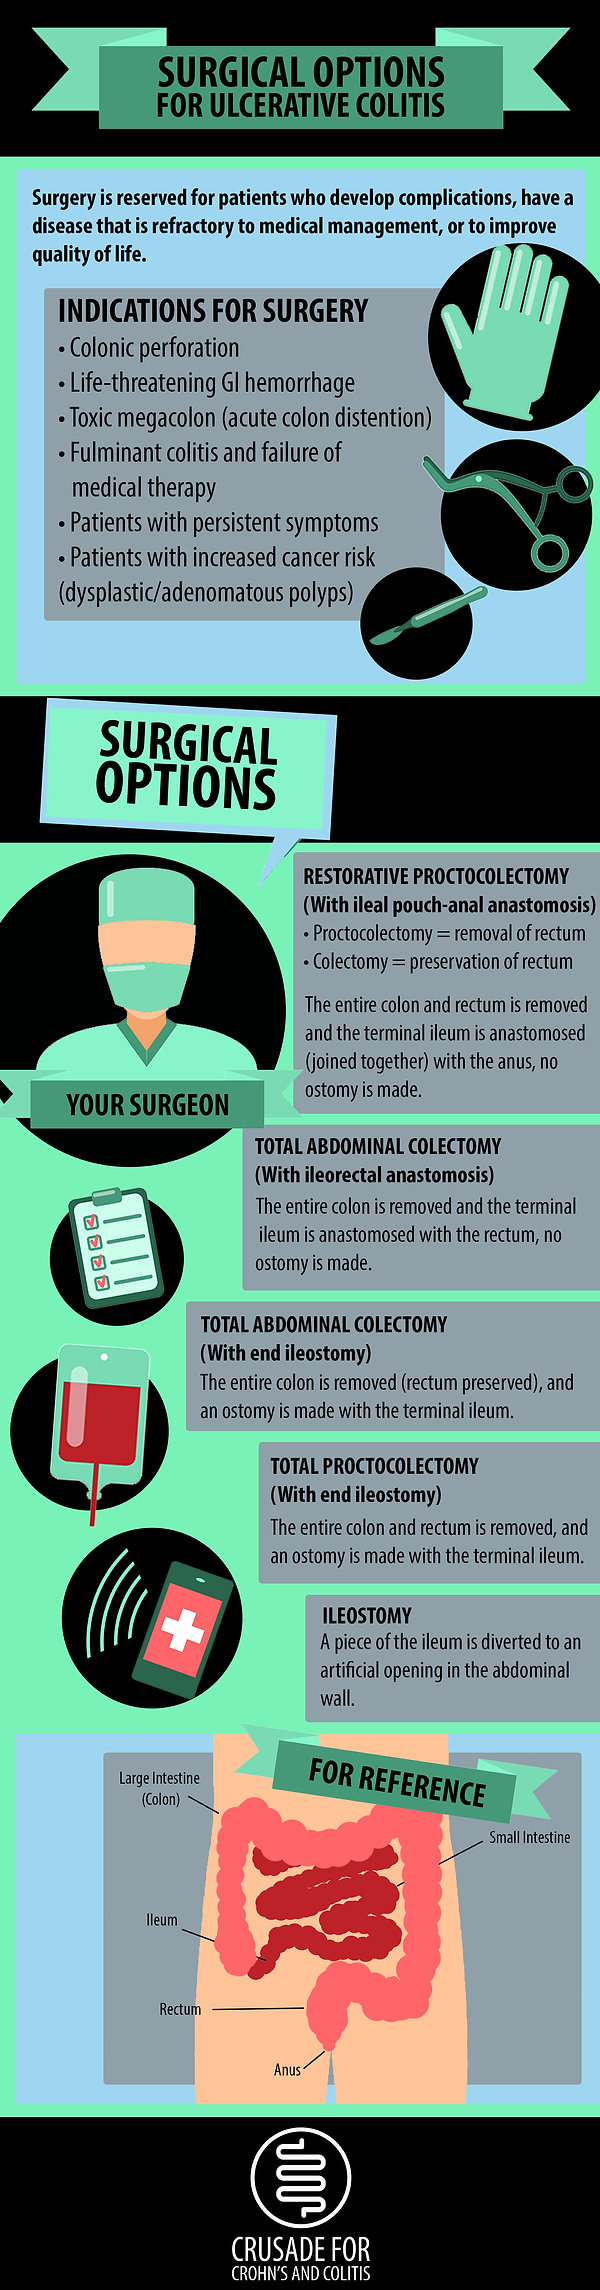 Surgical Options for UC Infographic